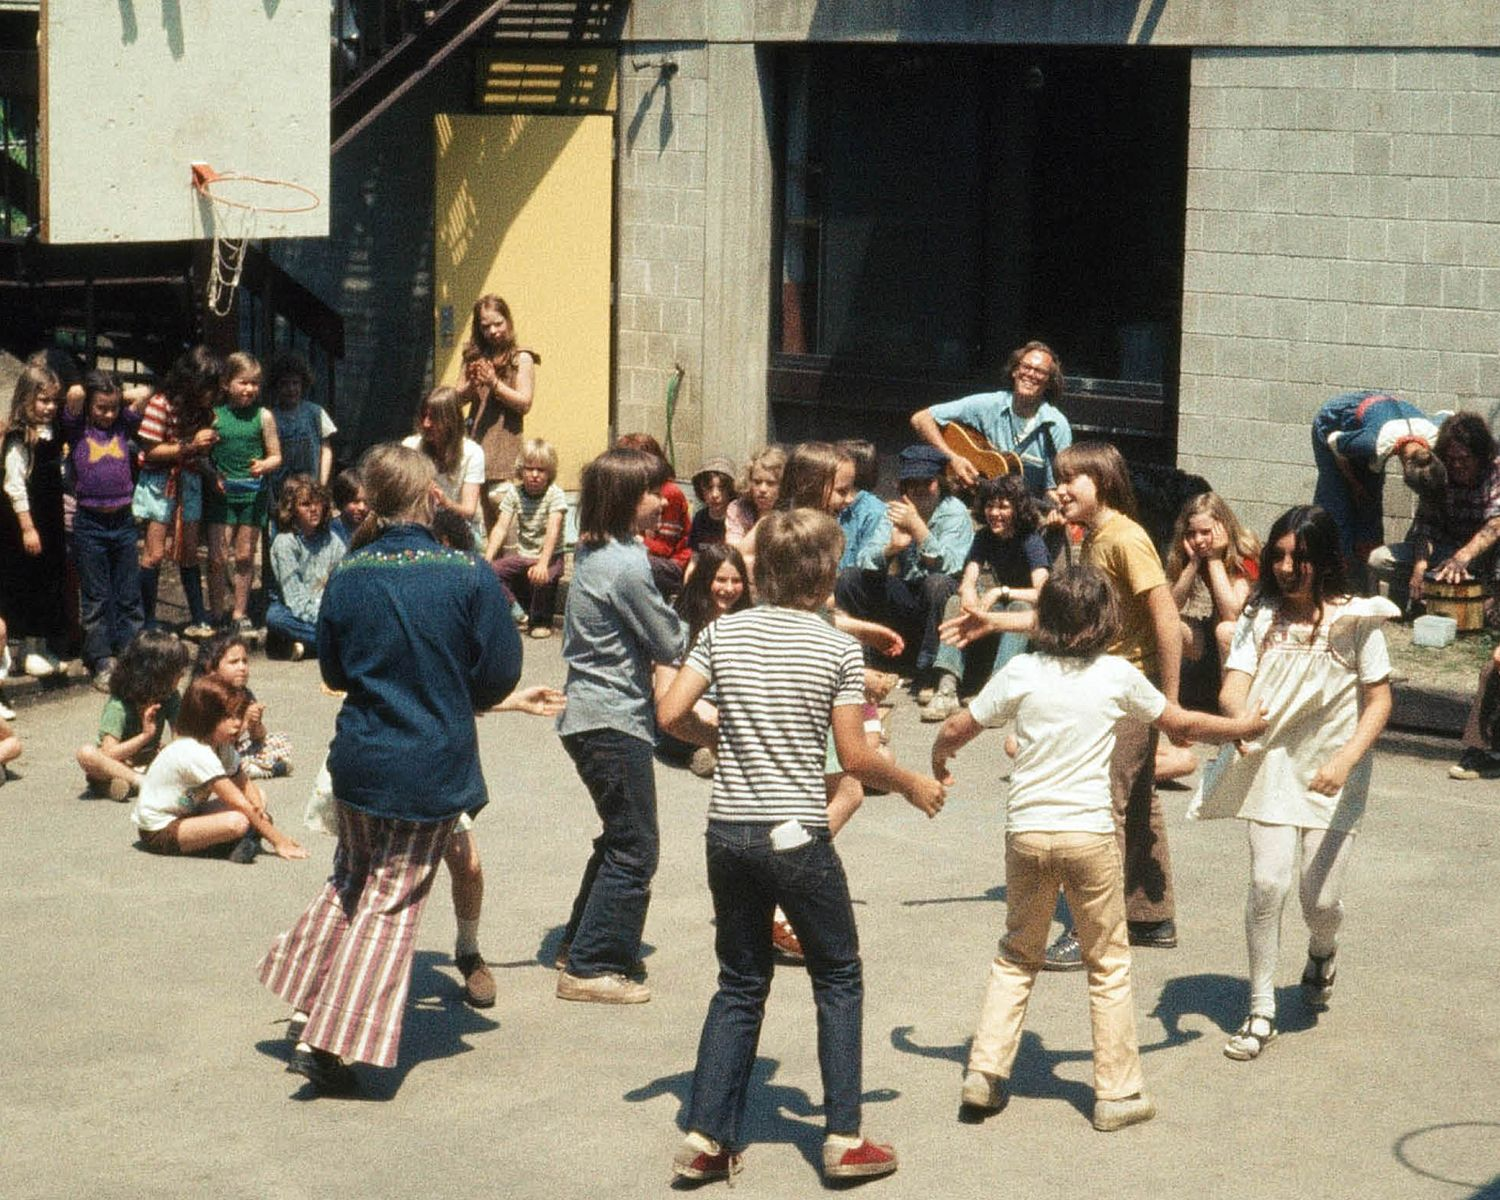 1974: Back Yard Celebration at 74R - Joe Walsh on guitar